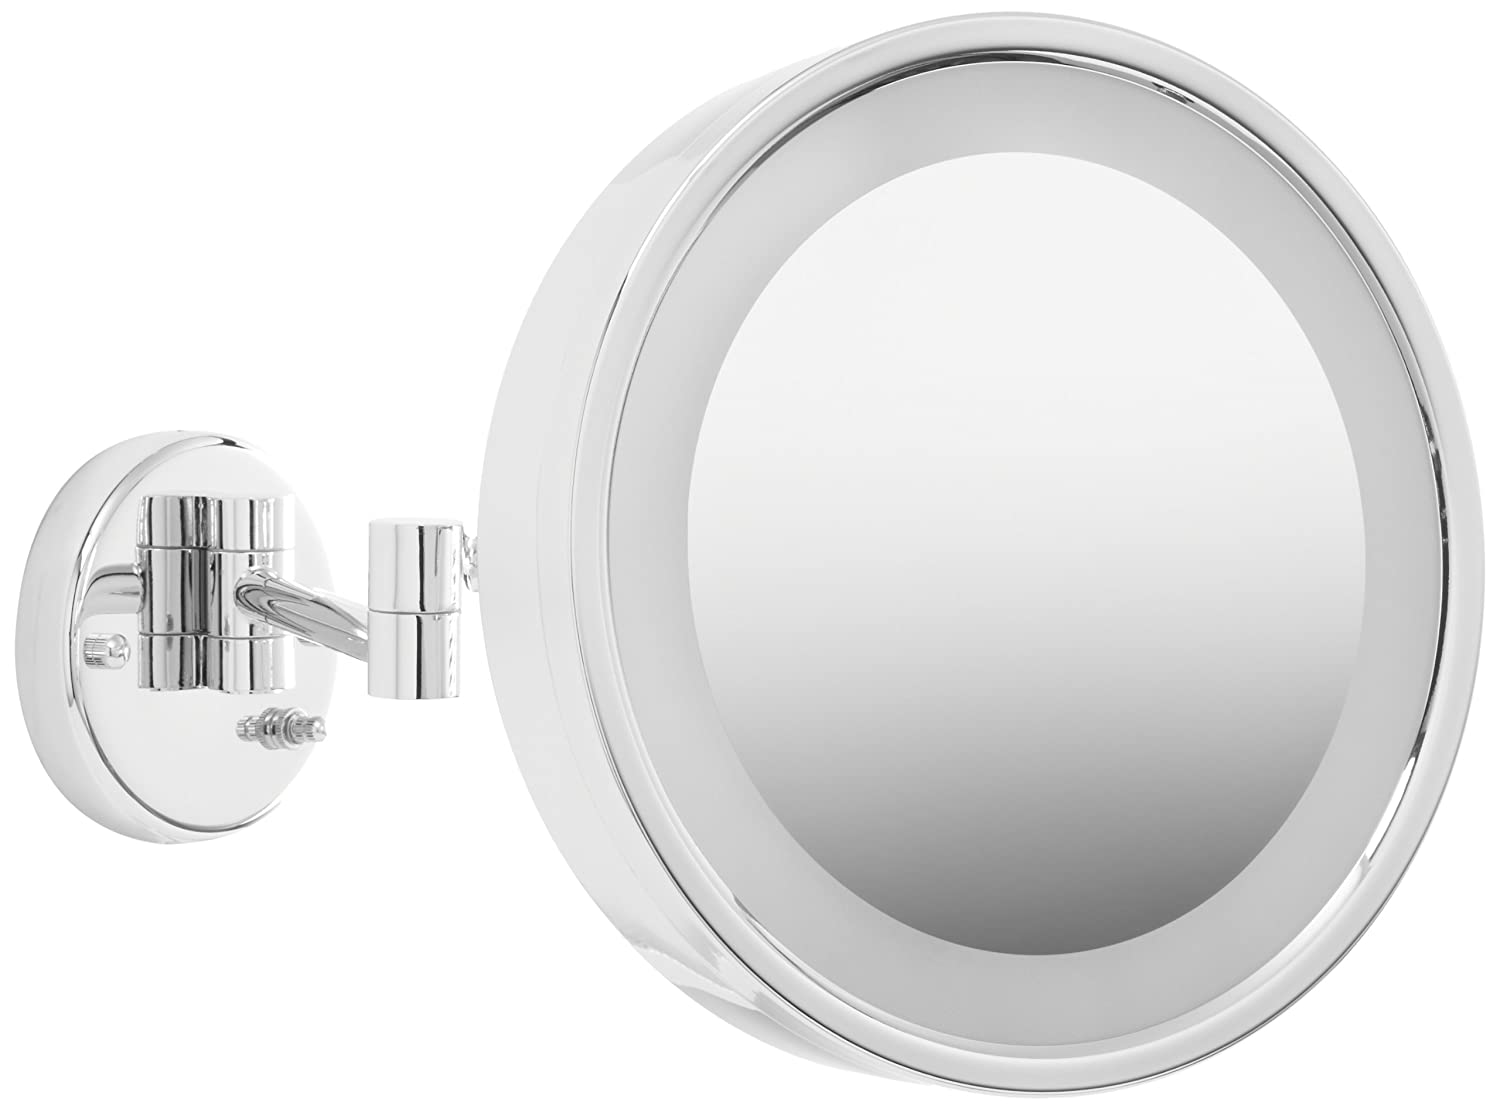 Amazon jerdon hl7cf 975 inch lighted wall mount makeup amazon jerdon hl7cf 975 inch lighted wall mount makeup mirror with 3x magnification chrome finish personal makeup mirrors beauty amipublicfo Choice Image